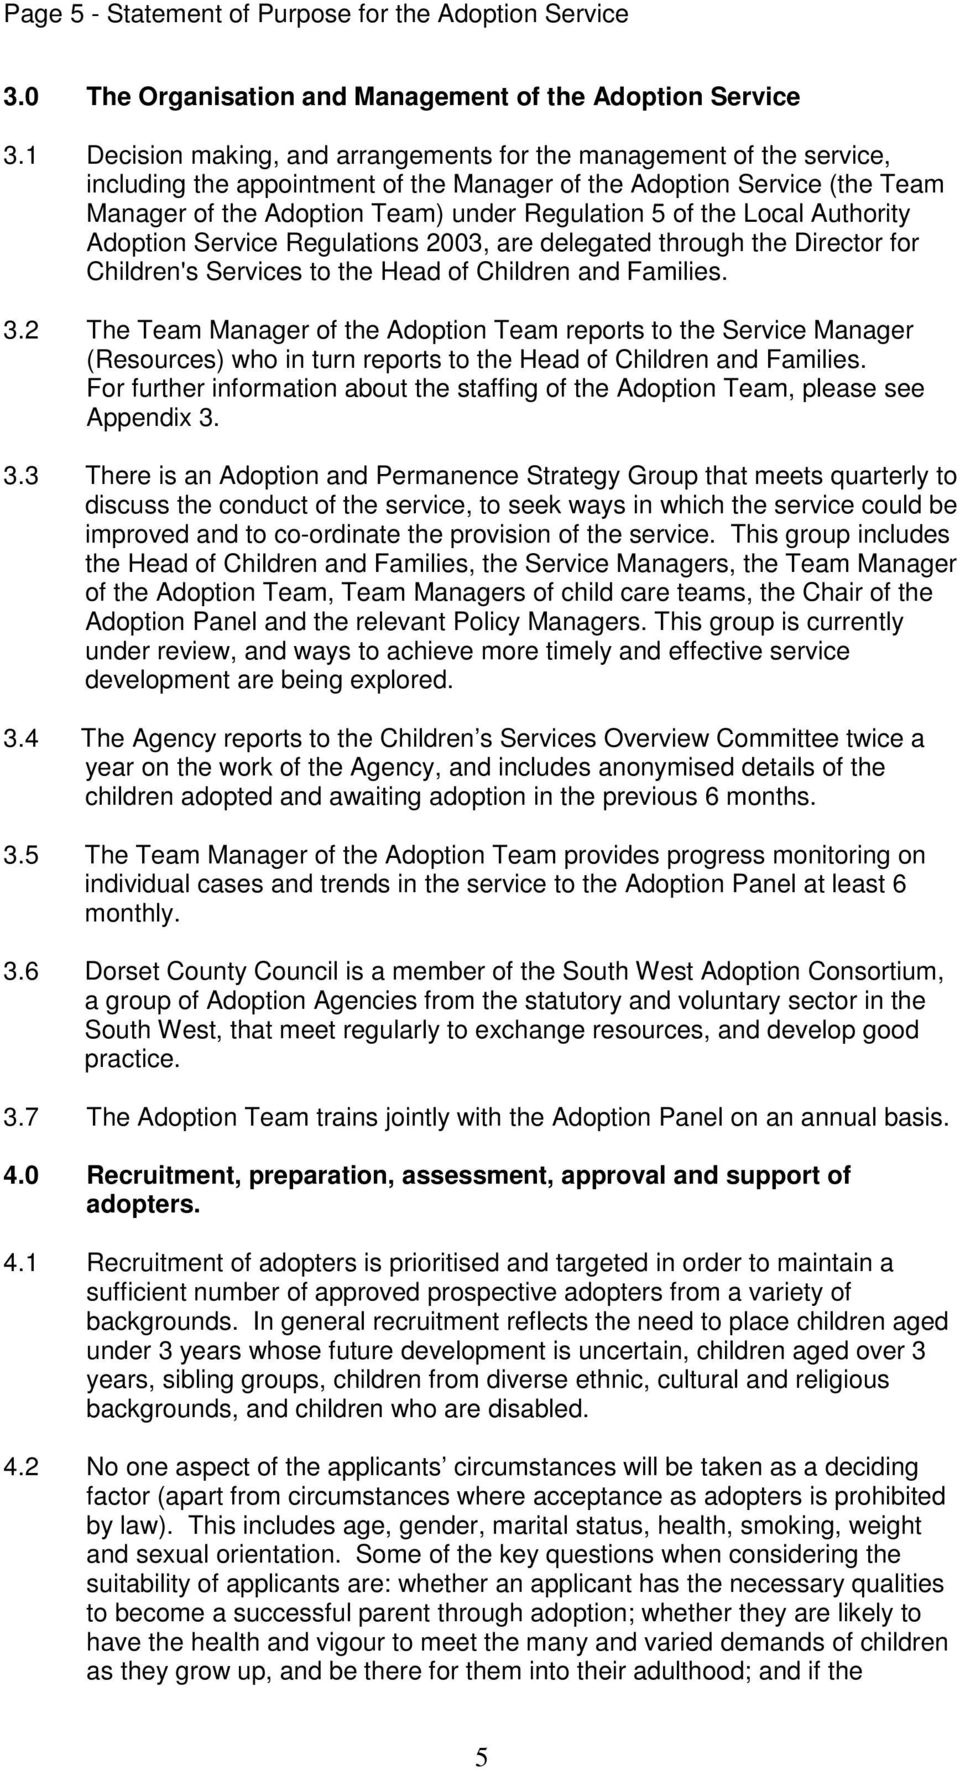 the Local Authority Adoption Service Regulations 2003, are delegated through the Director for Children's Services to the Head of Children and Families. 3.